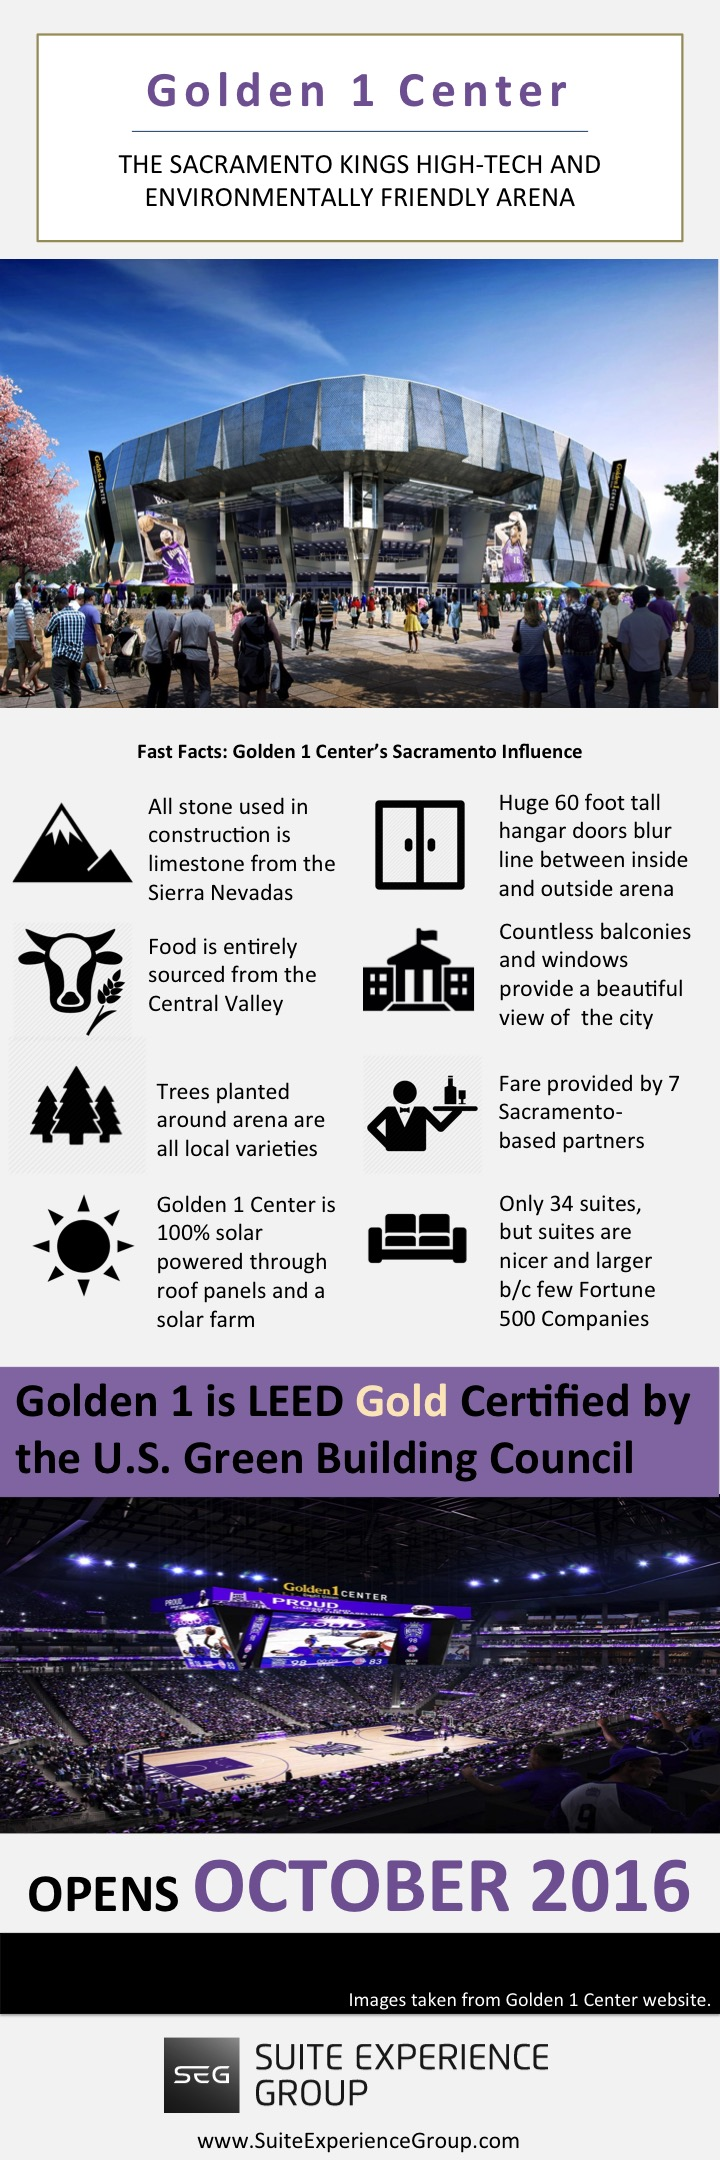 Golden 1 Center fun facts